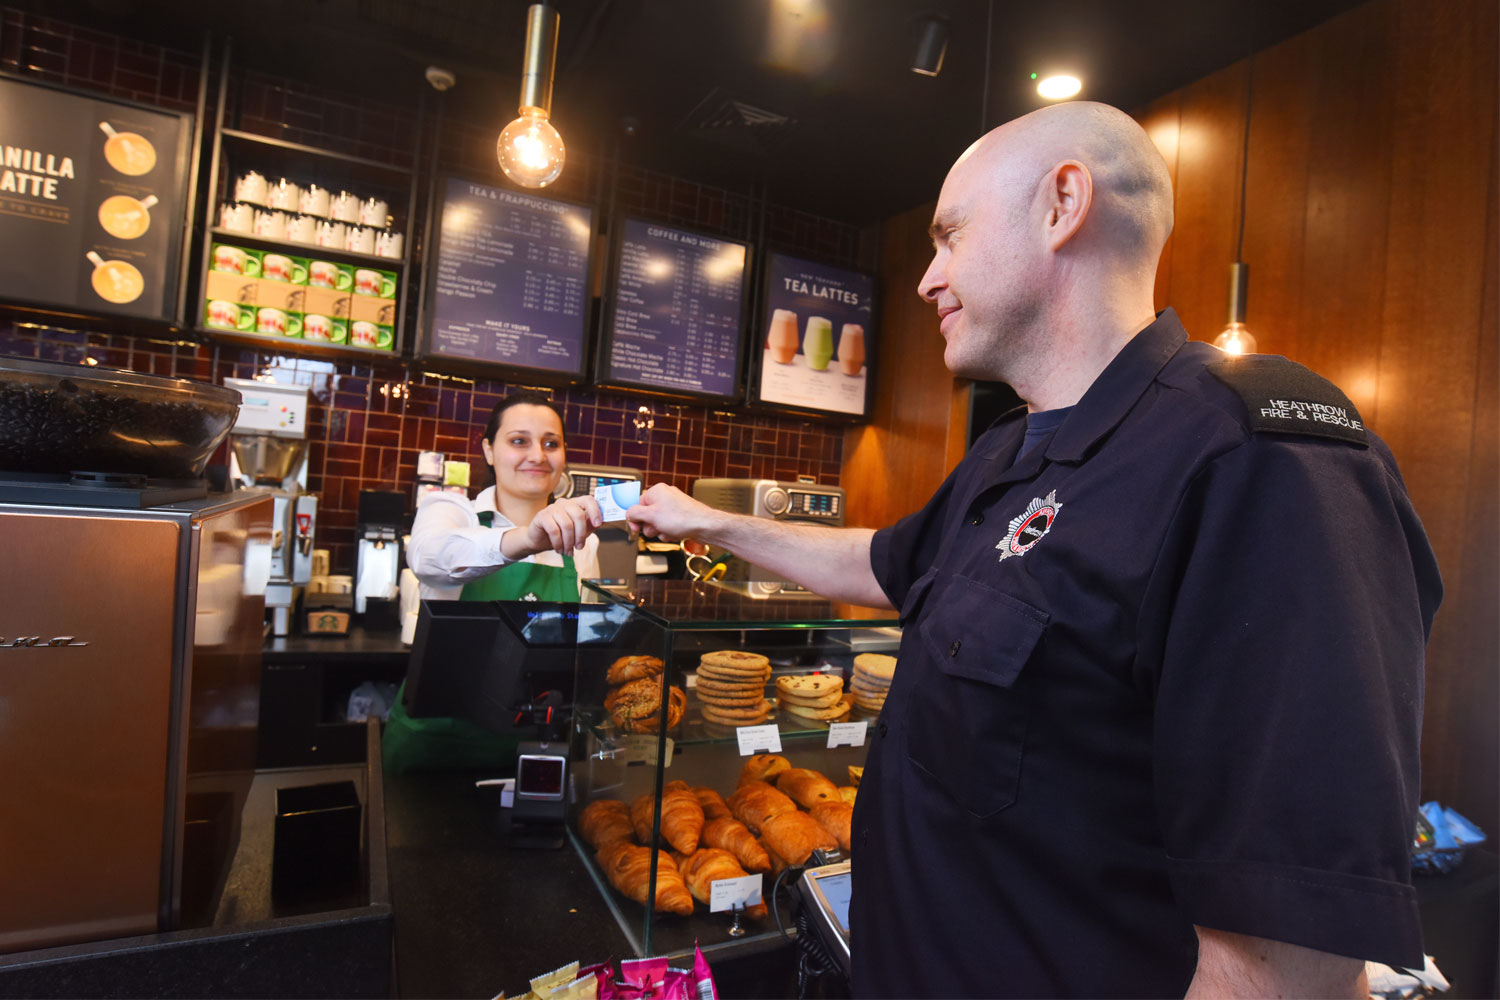 Starbucks gives back to everyday heroes with new discount programme